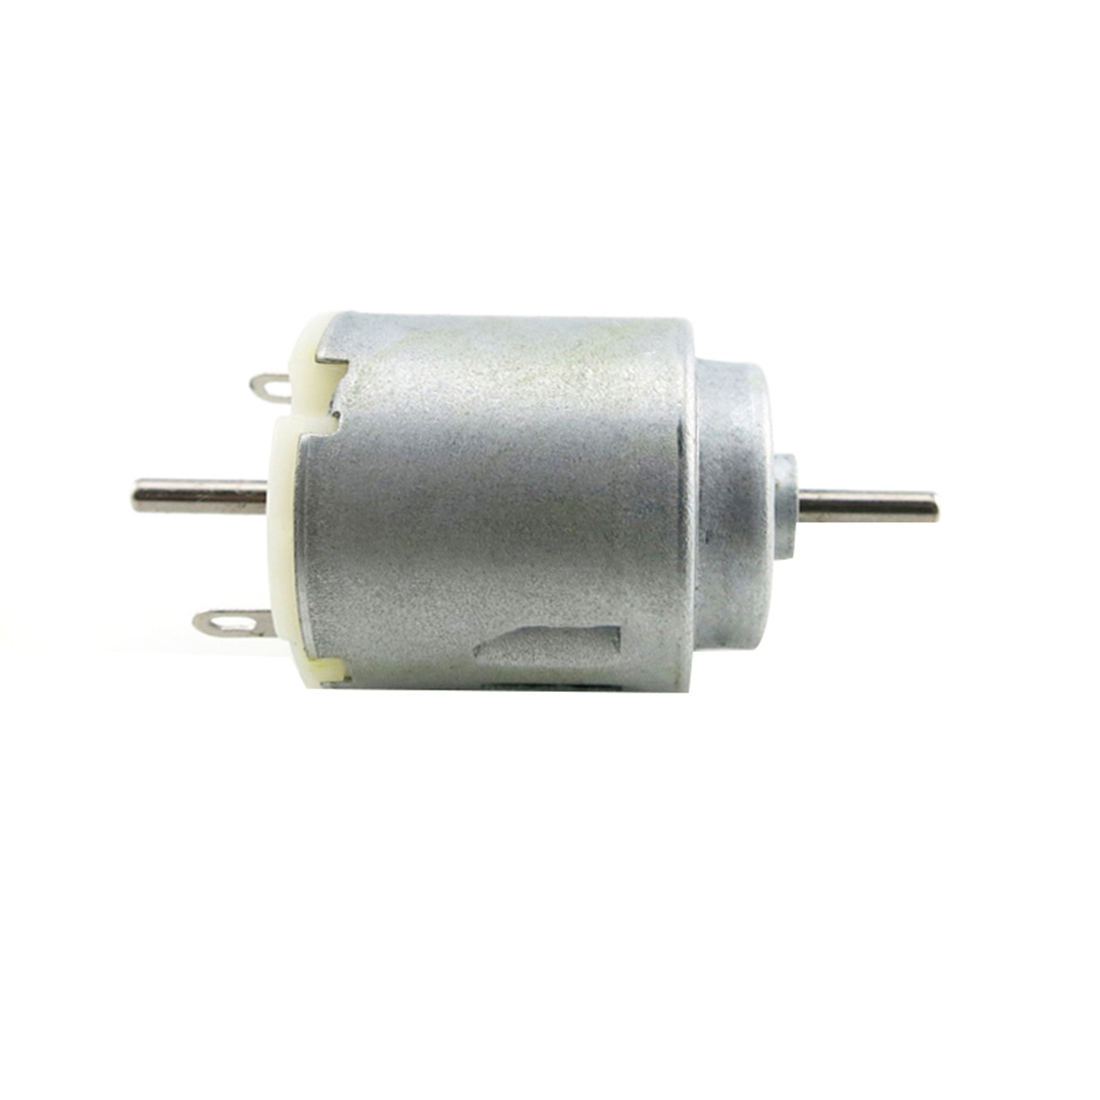 10 PCS DC 3V 140 Dual-axle Motor 8000 RPM for DIY Electric Motor Toy Car Ships Small Fan